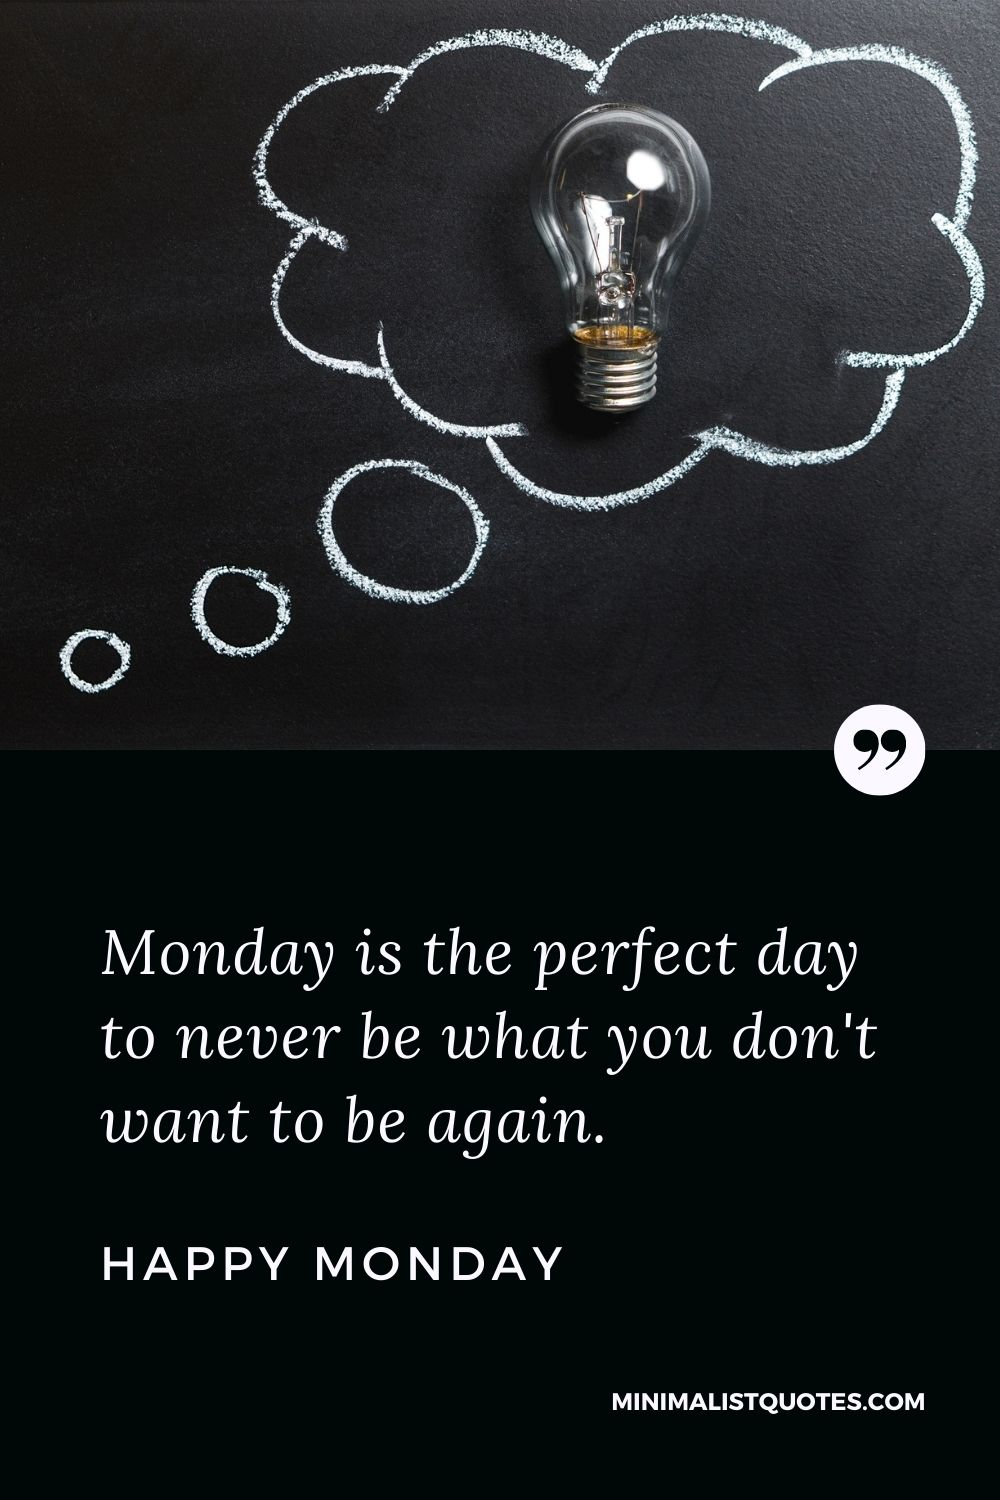 Monday Motivation quote & message with image: Monday is the perfect day to never be what you don't want to be again. Happy Monday!